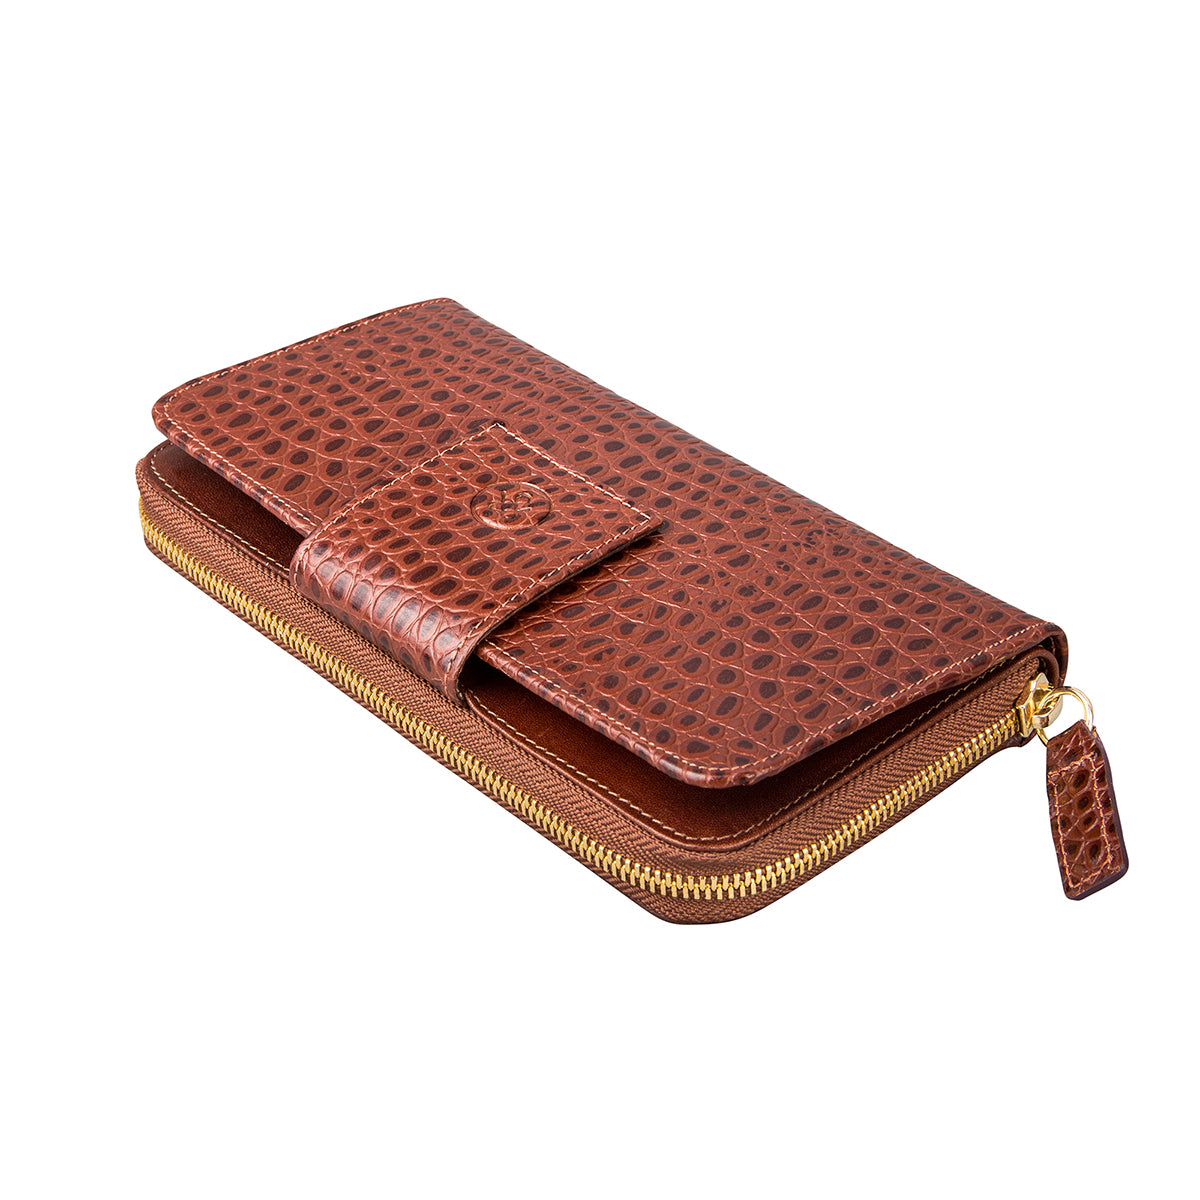 Image 4 of the 'Giorgia' Chestnut Mock Croc Veg-Tanned Leather Zip Purse